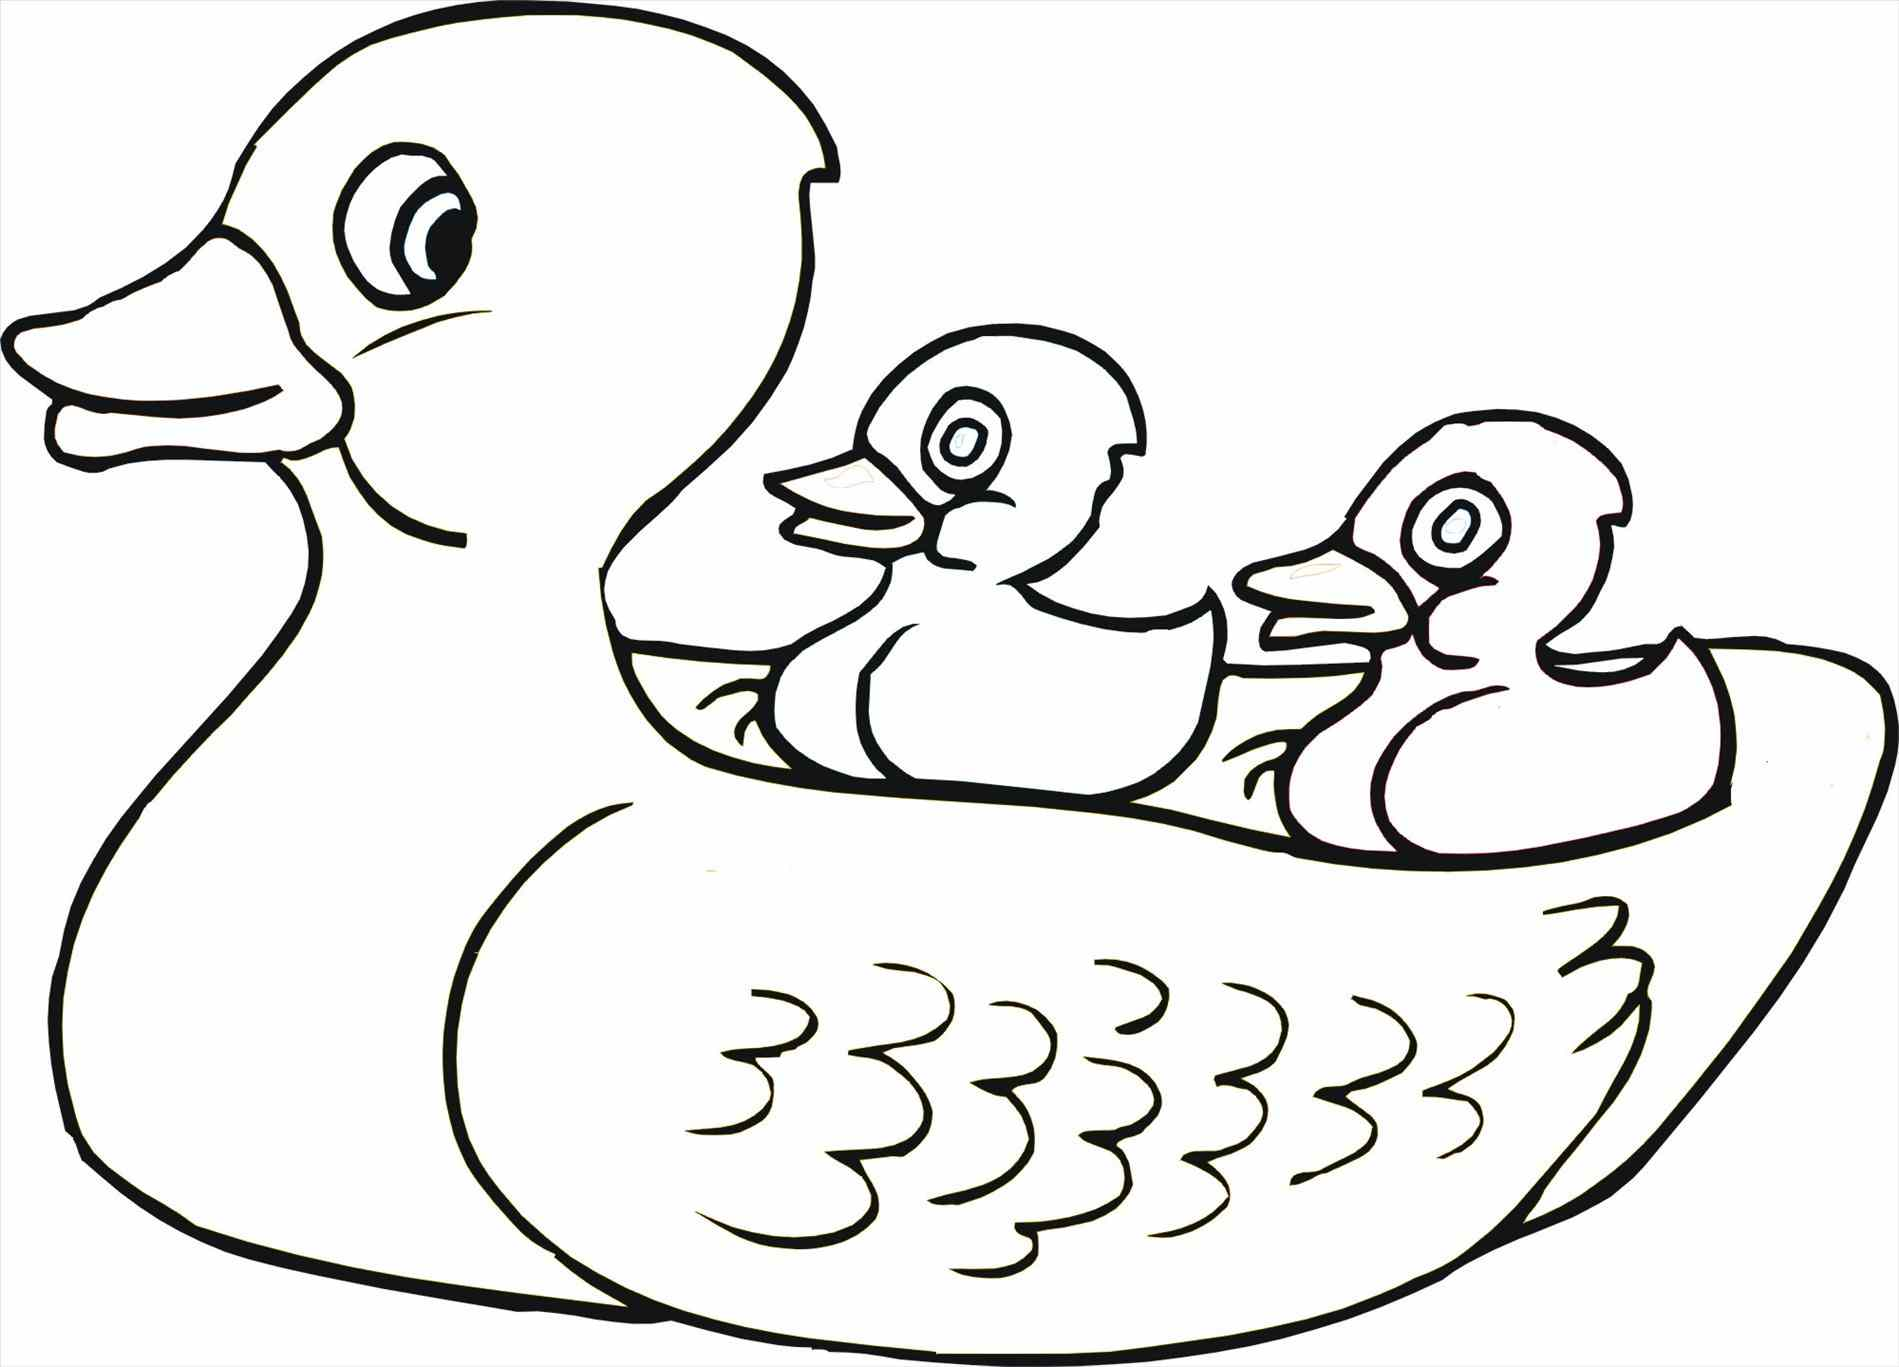 Rubber Duck Outline Free download best Rubber Duck Outline on